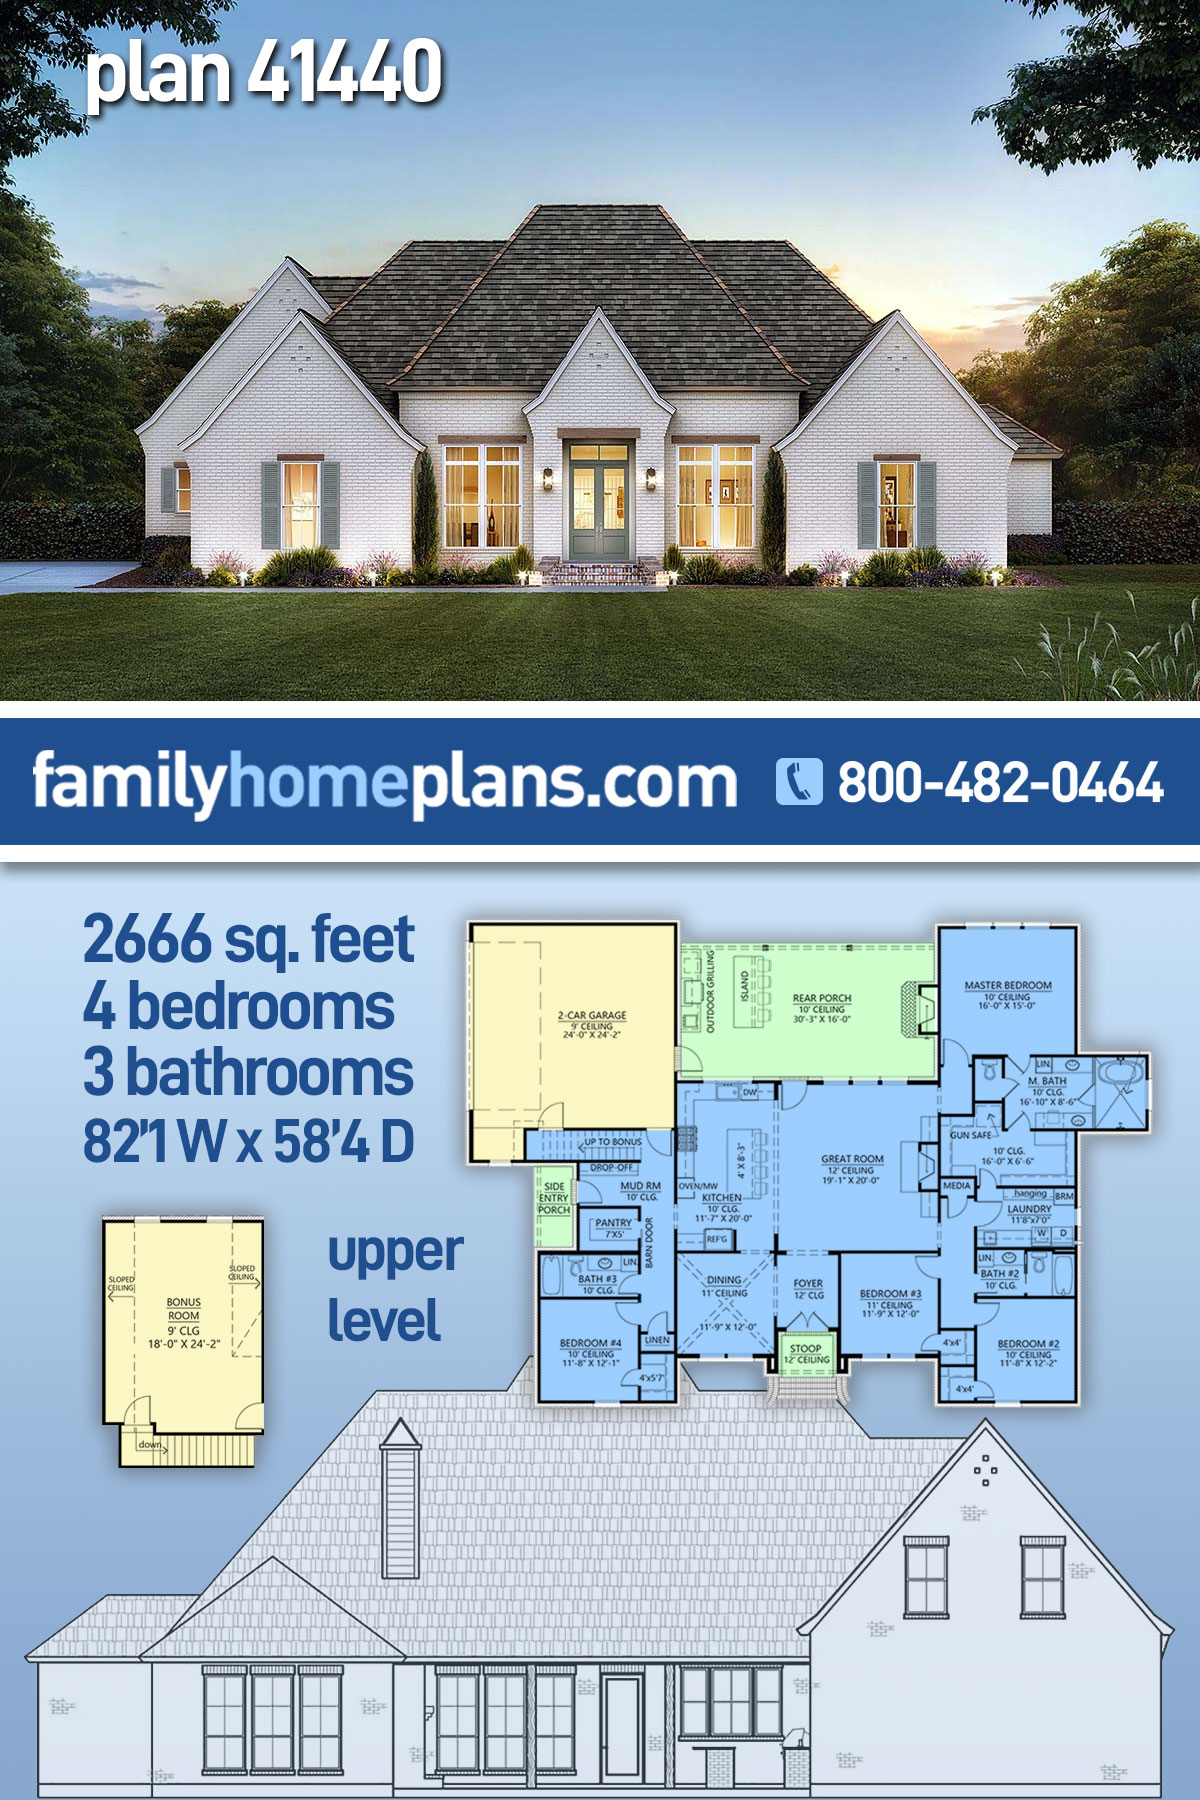 Acadian, European, French Country House Plan 41440 with 4 Beds, 3 Baths, 2 Car Garage